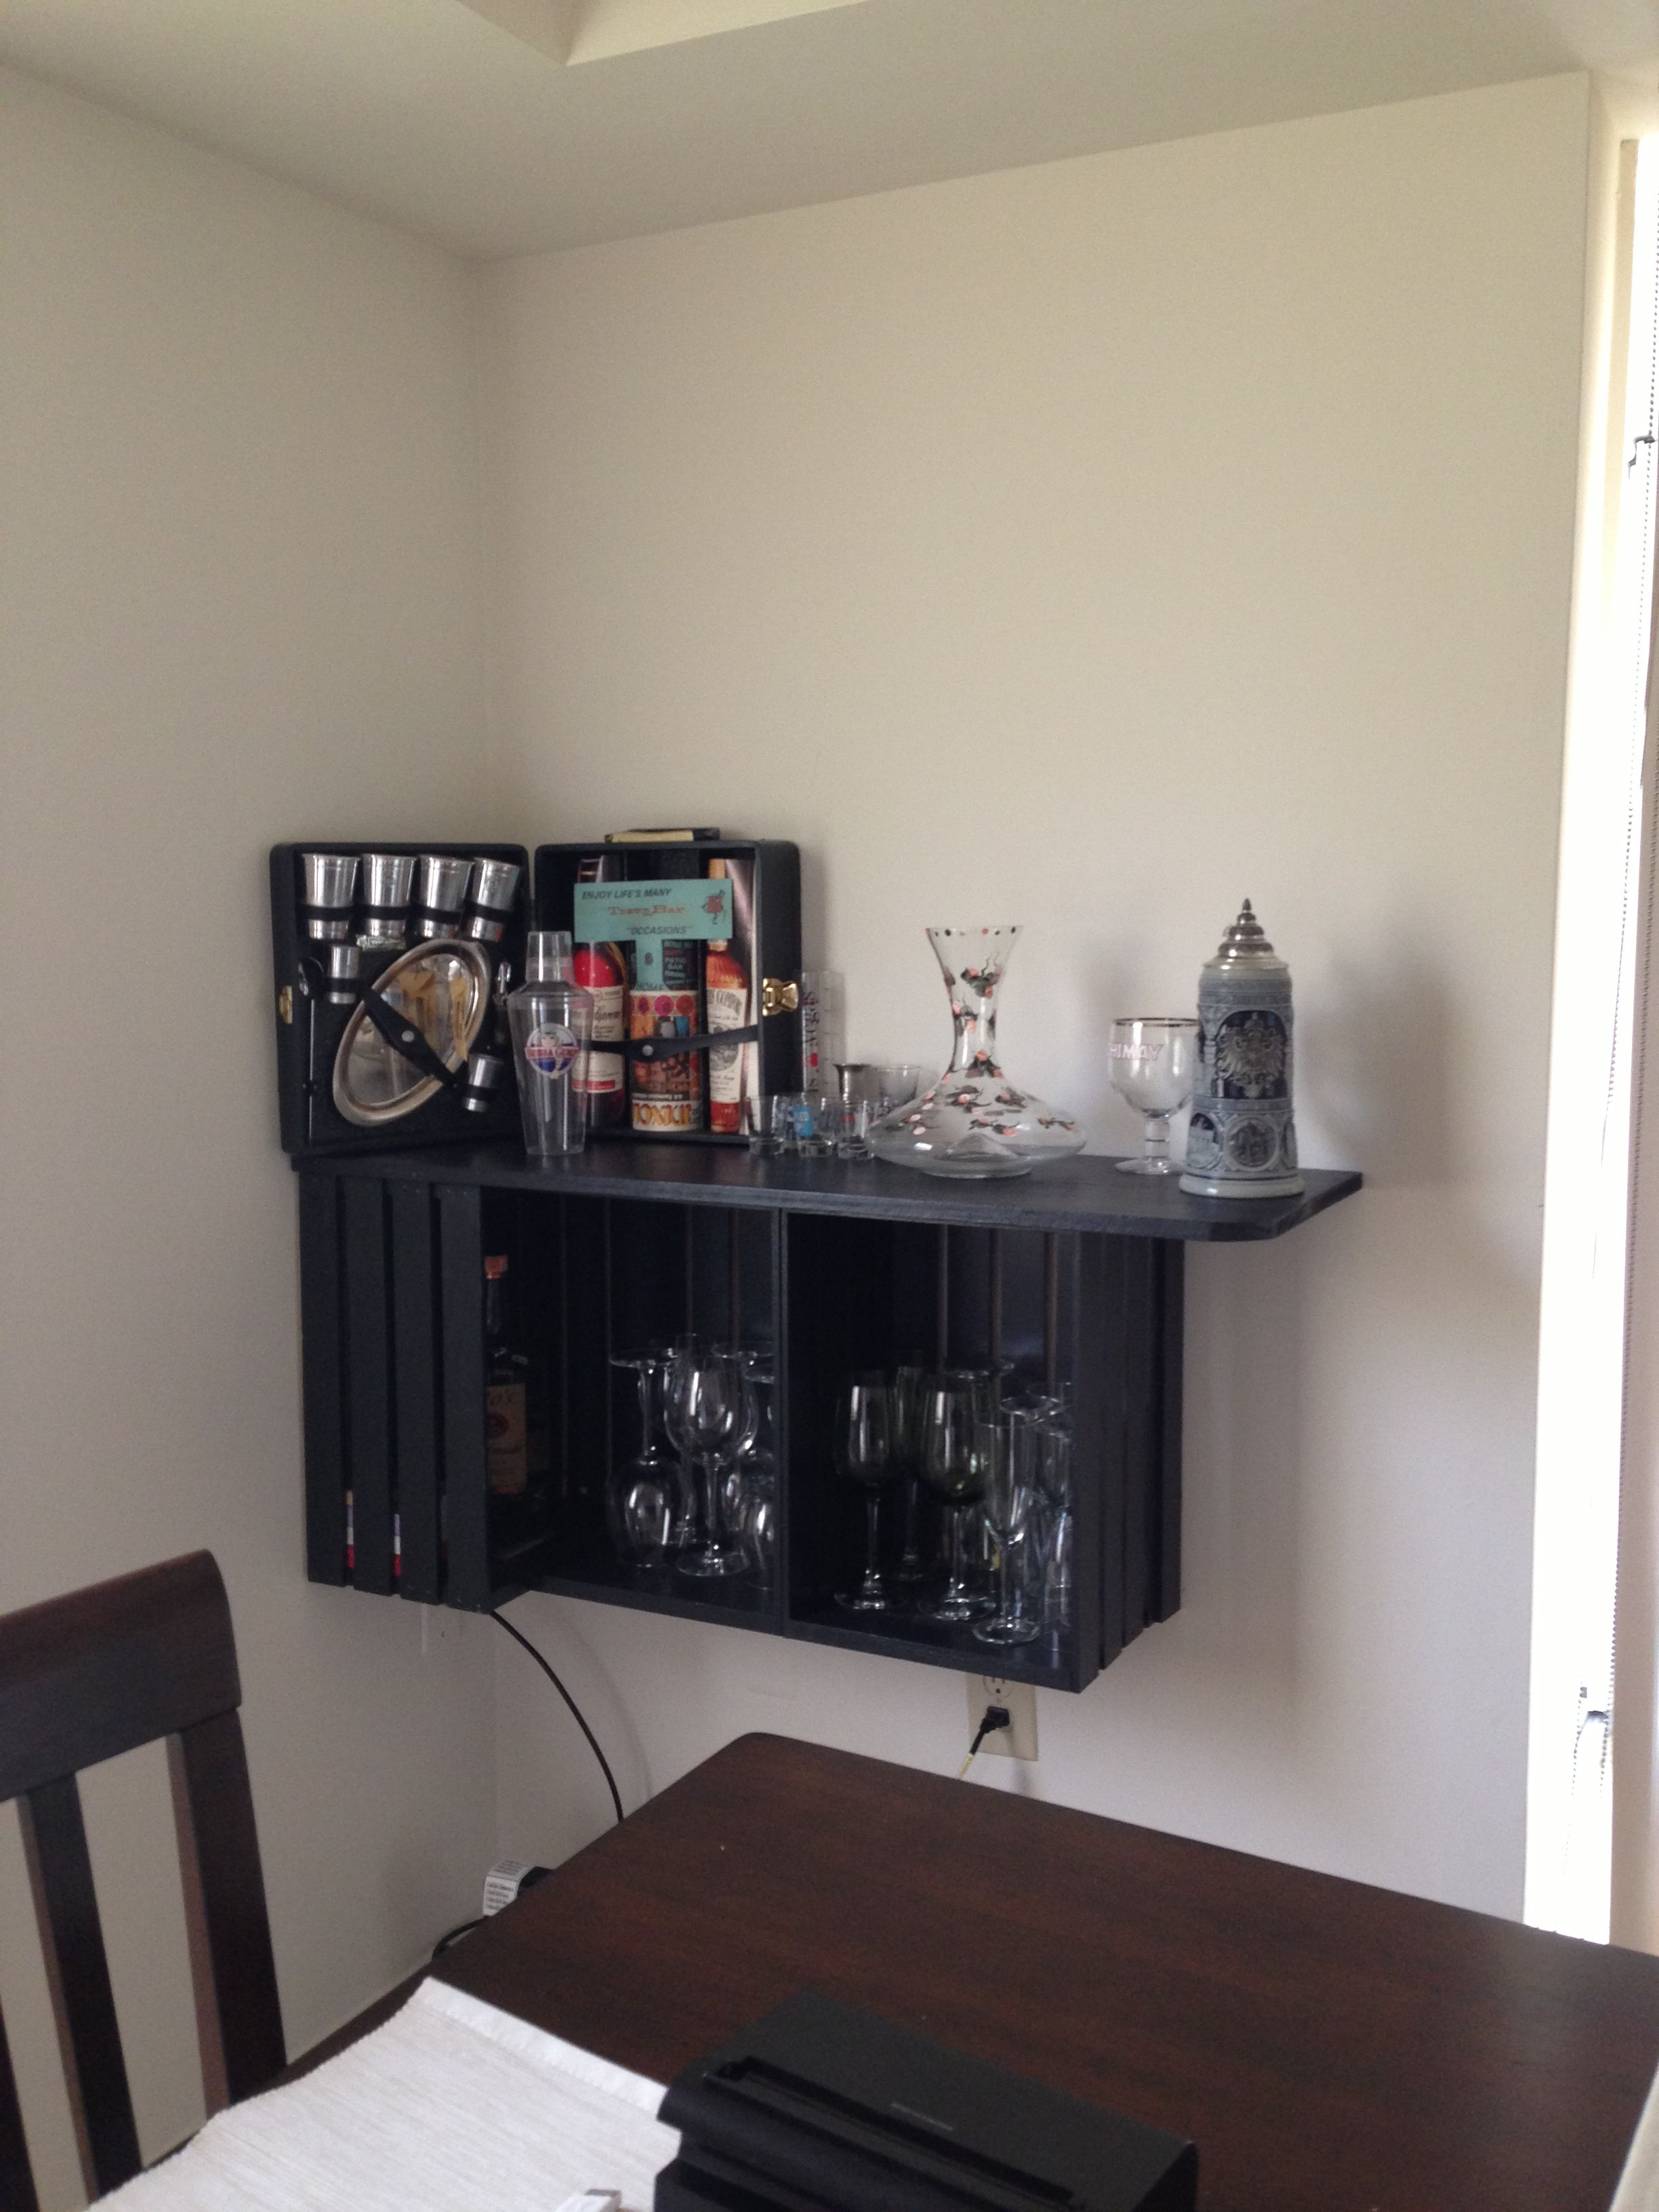 DIY corner bar from wooden crates | My personal creations ...